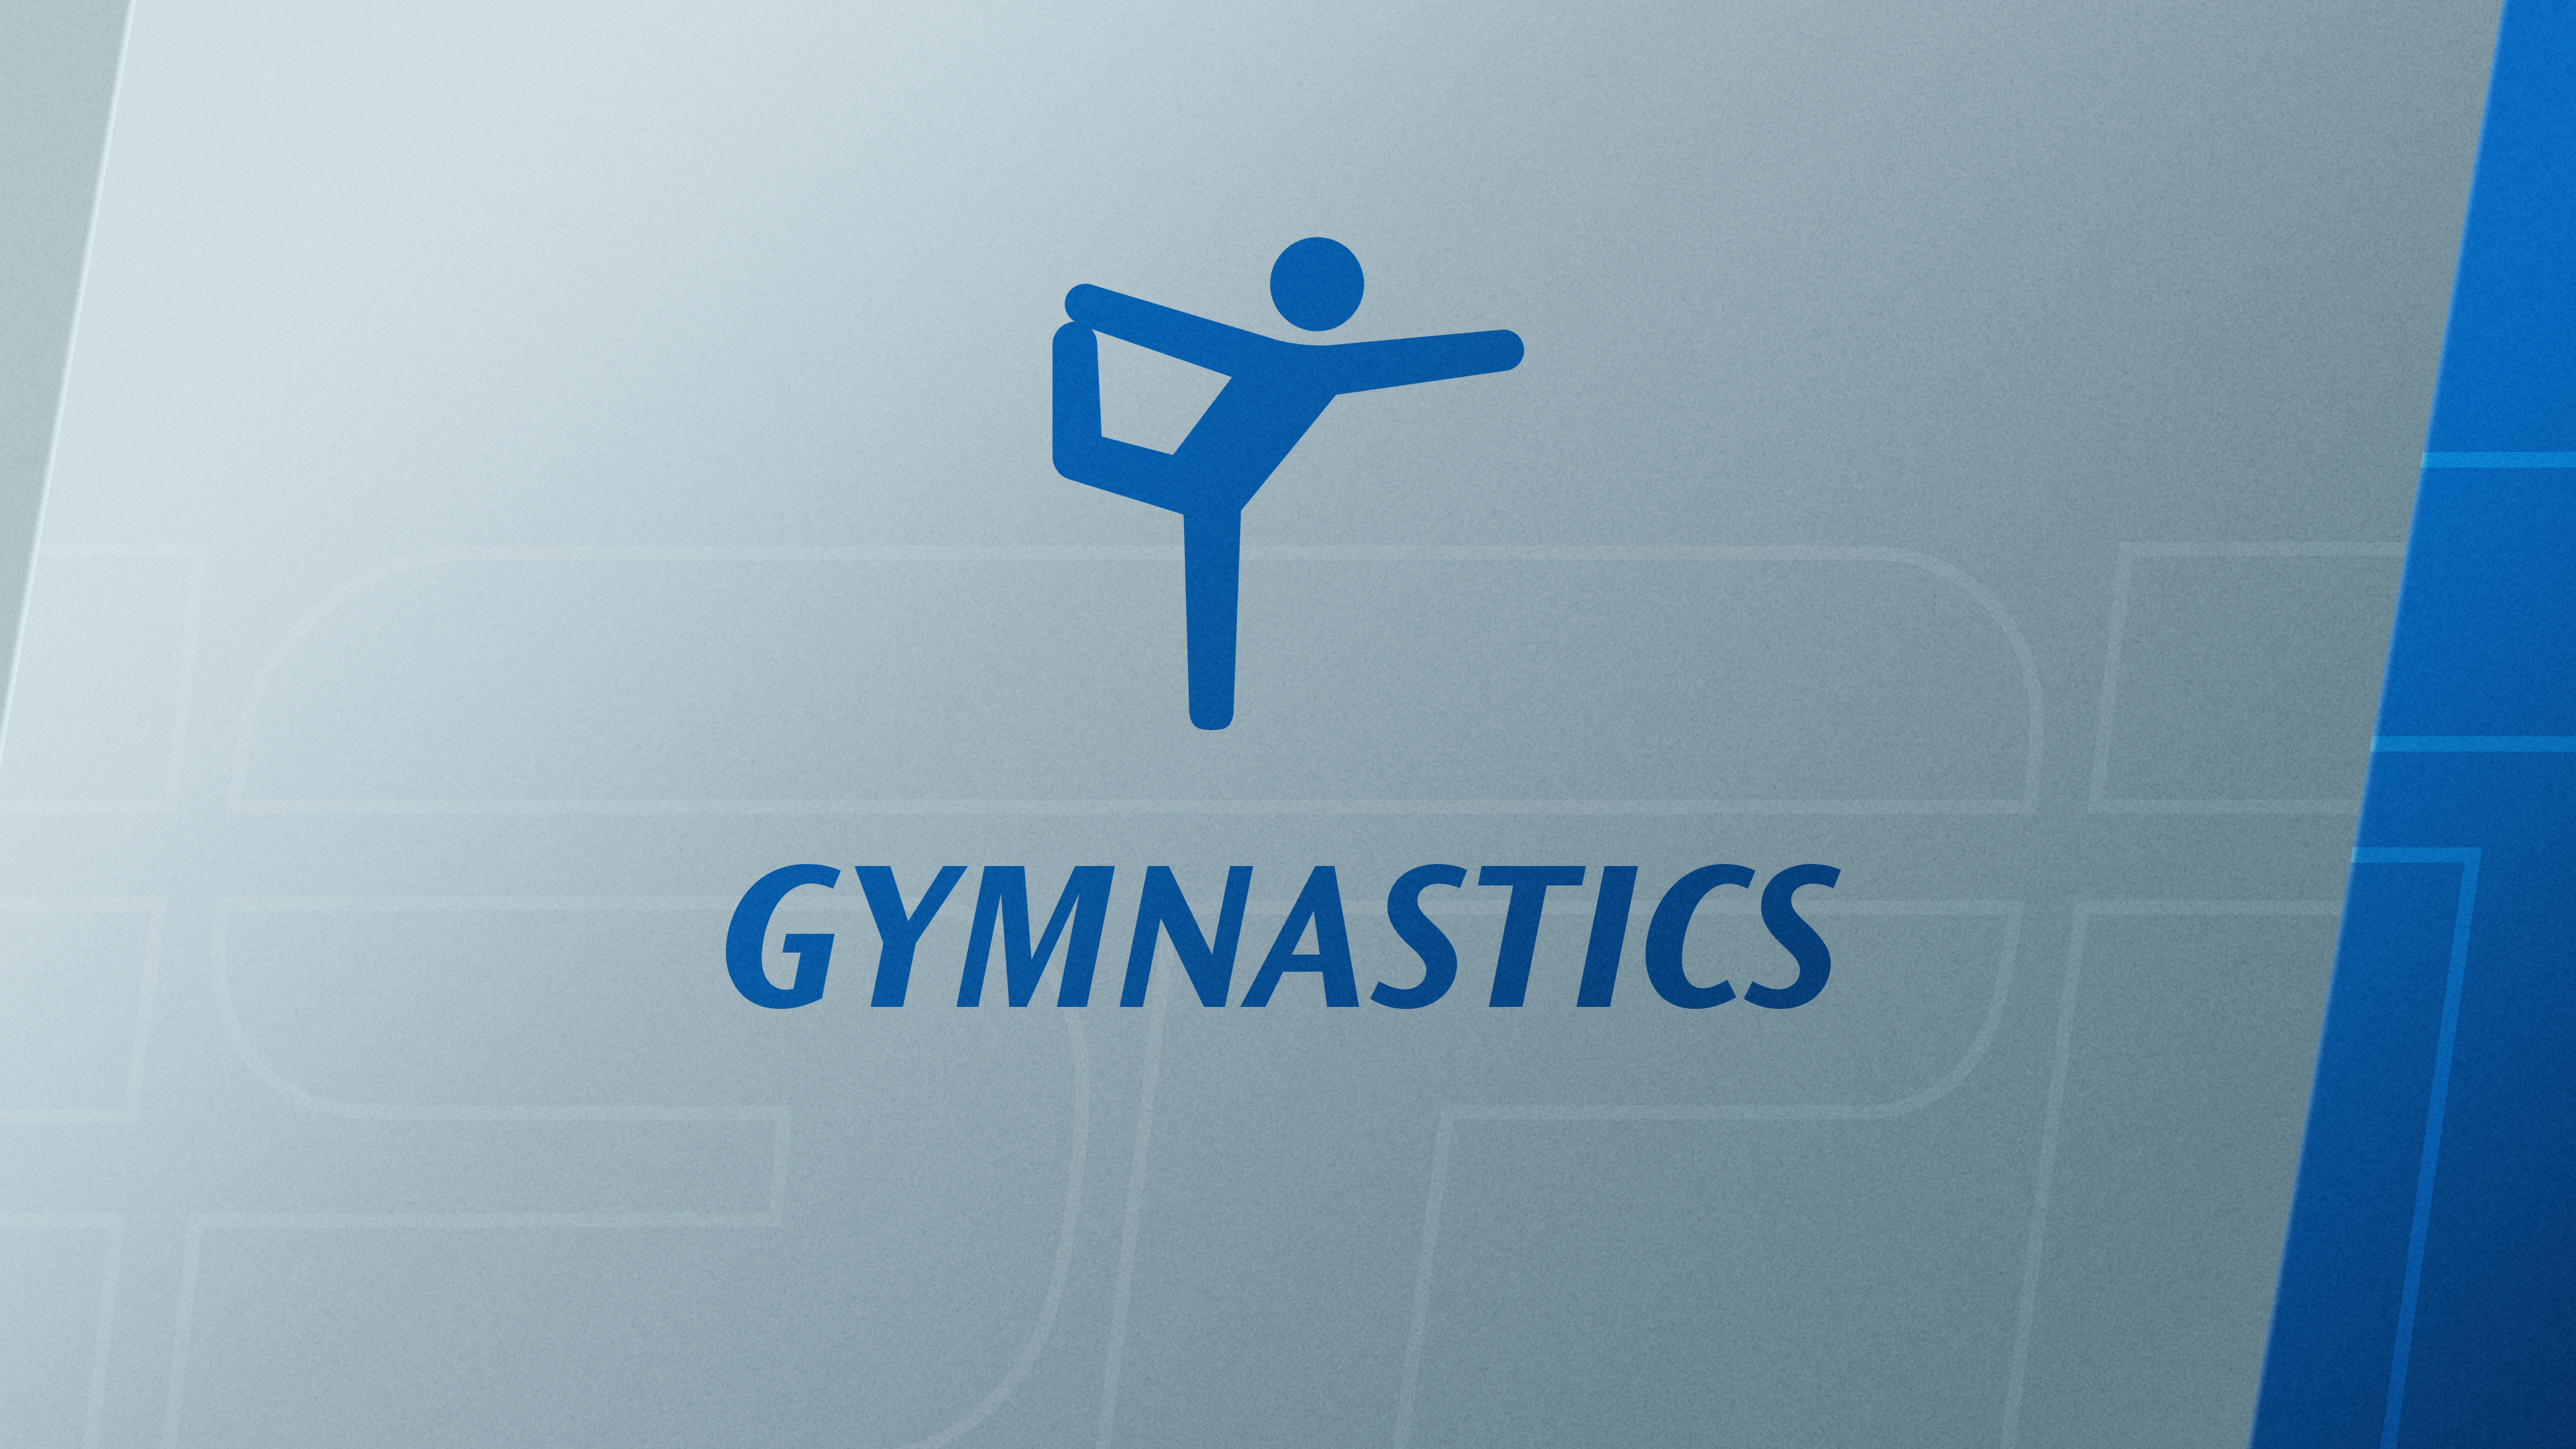 Before the Heights: SEC Gymnastics